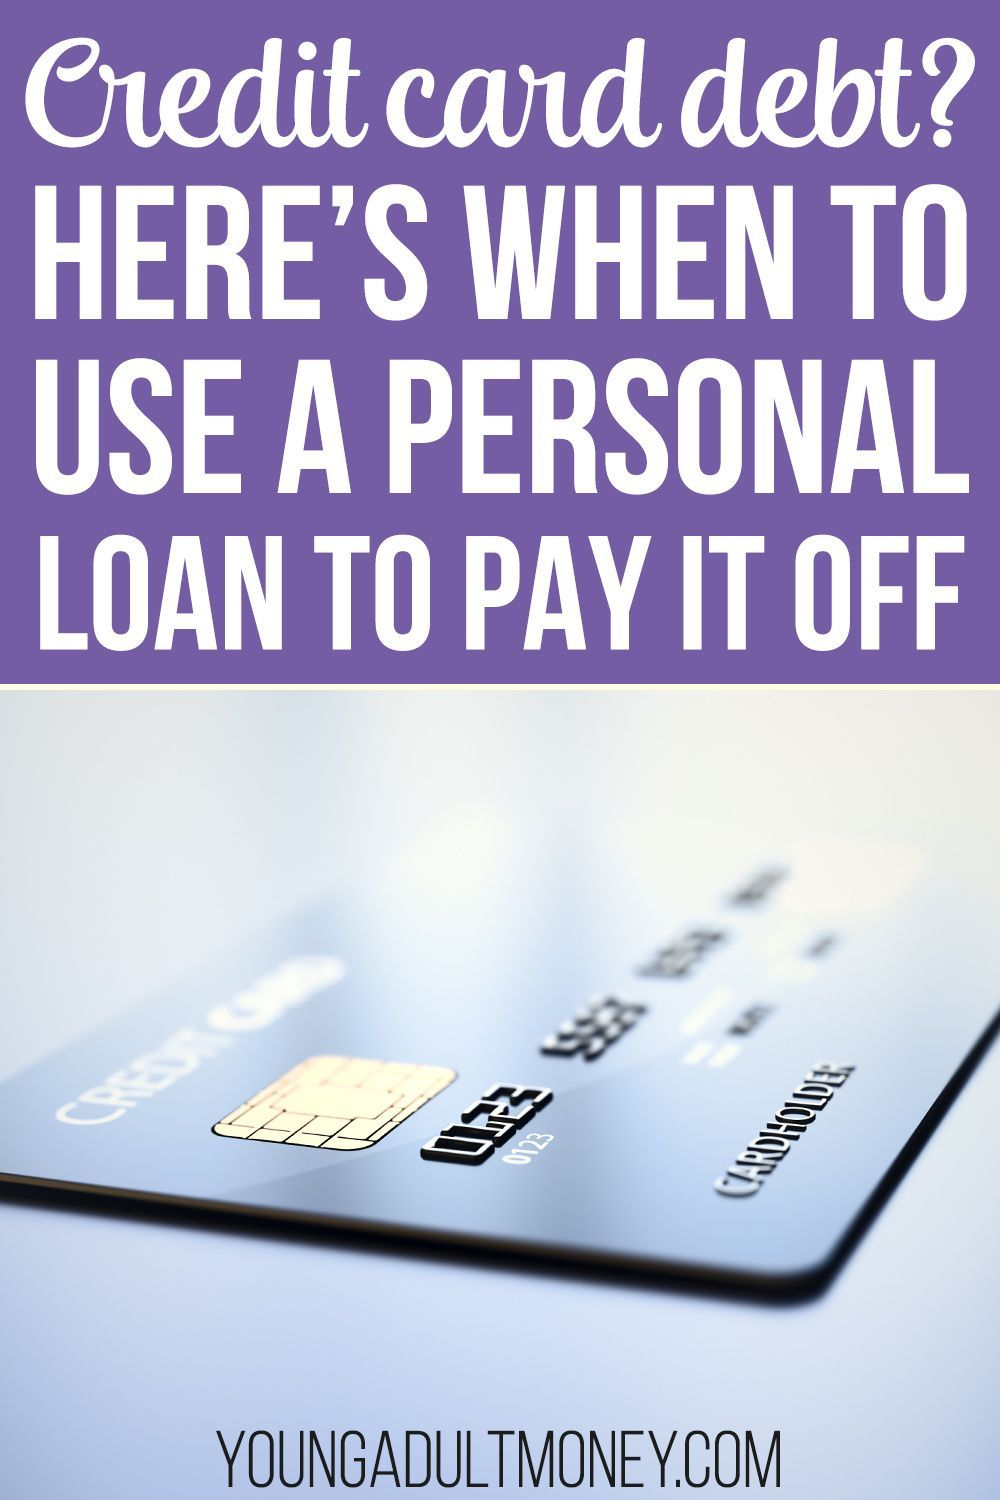 When To Use A Personal Loan To Pay Off Credit Card Debt In 2020 Personal Loans Paying Off Credit Cards Balance Transfer Credit Cards